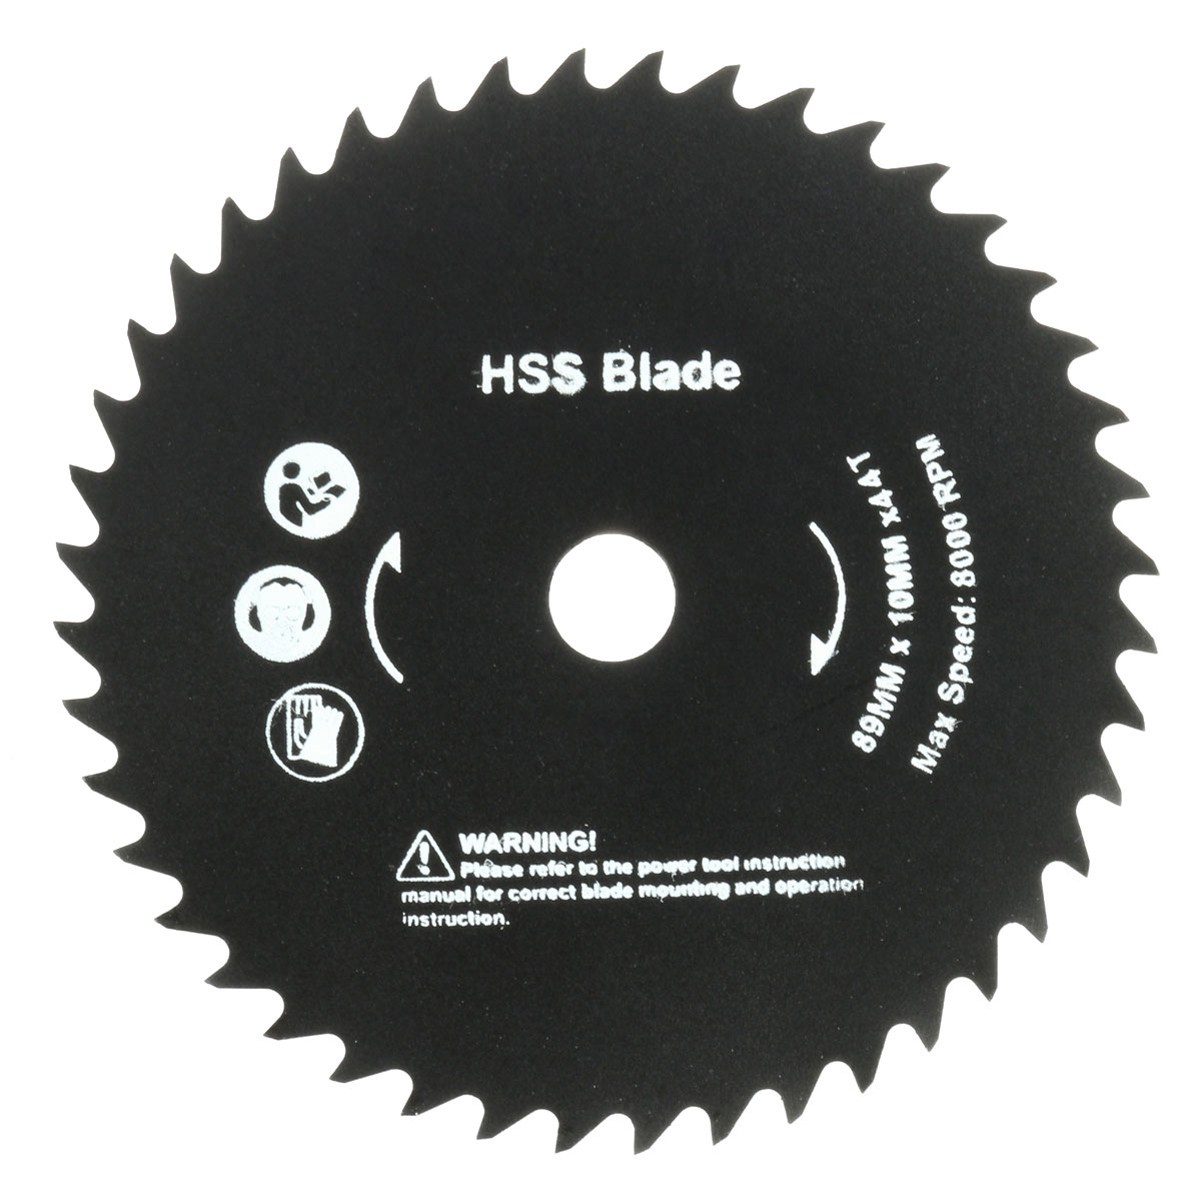 1PC Round HSS Saw Blades 89mm 44 Teeth Cutting Disc Wheel For Worx WorxSaw Cutter Best Price